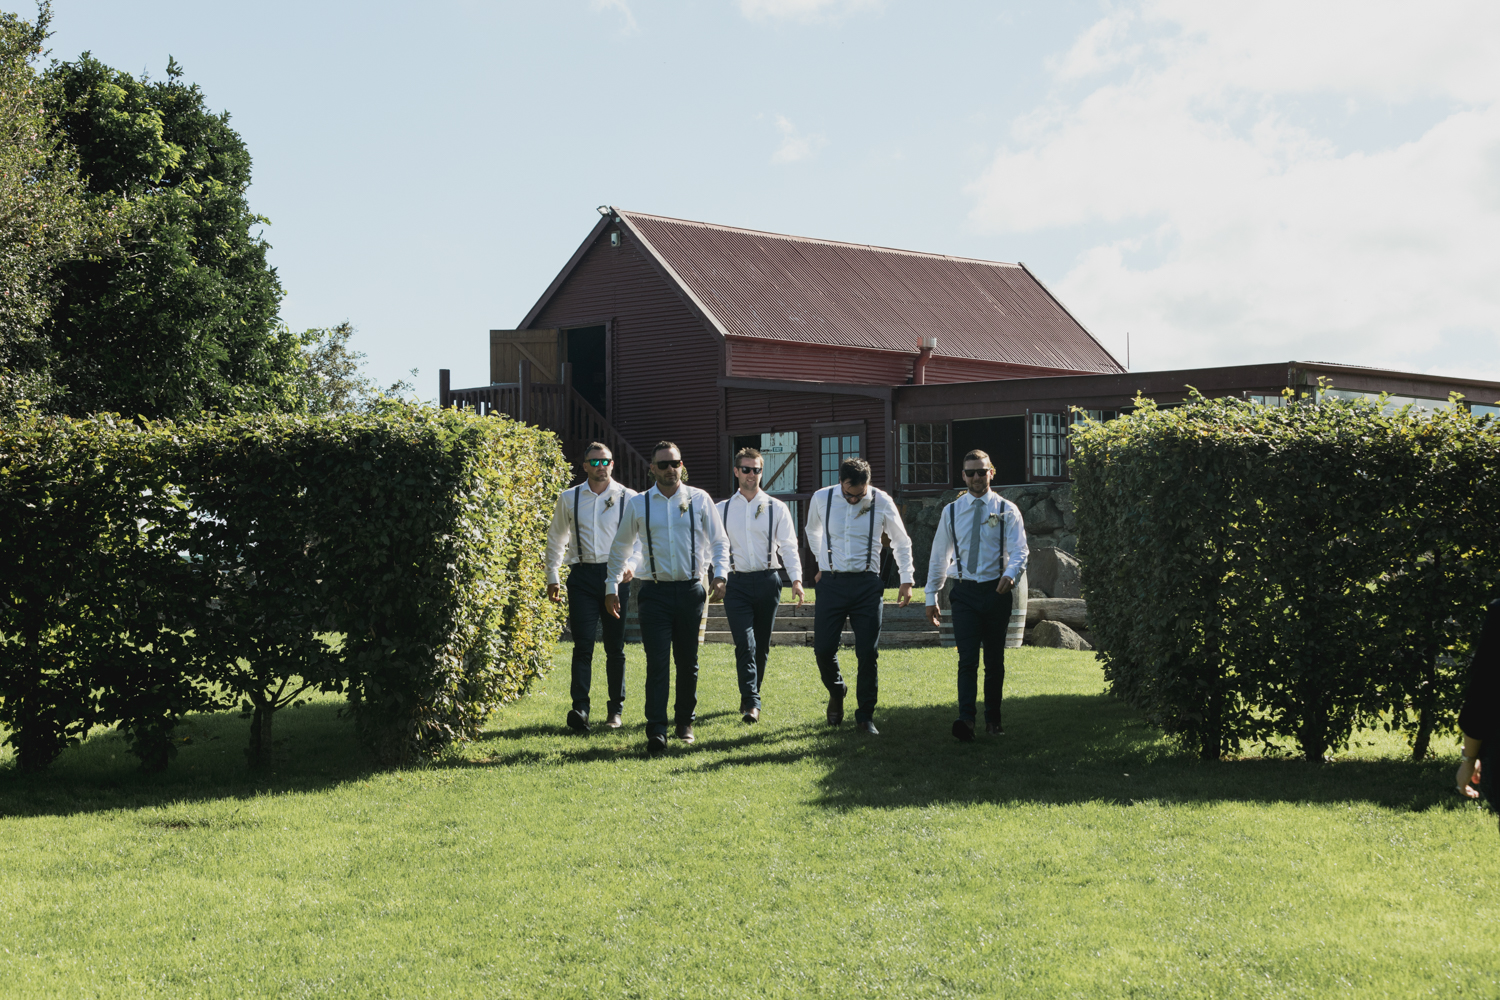 wedding-at-the-red-barn-new-zealand-wedding-photographer-groom-with-groomsmen-arriving-at-ceremony.jpg